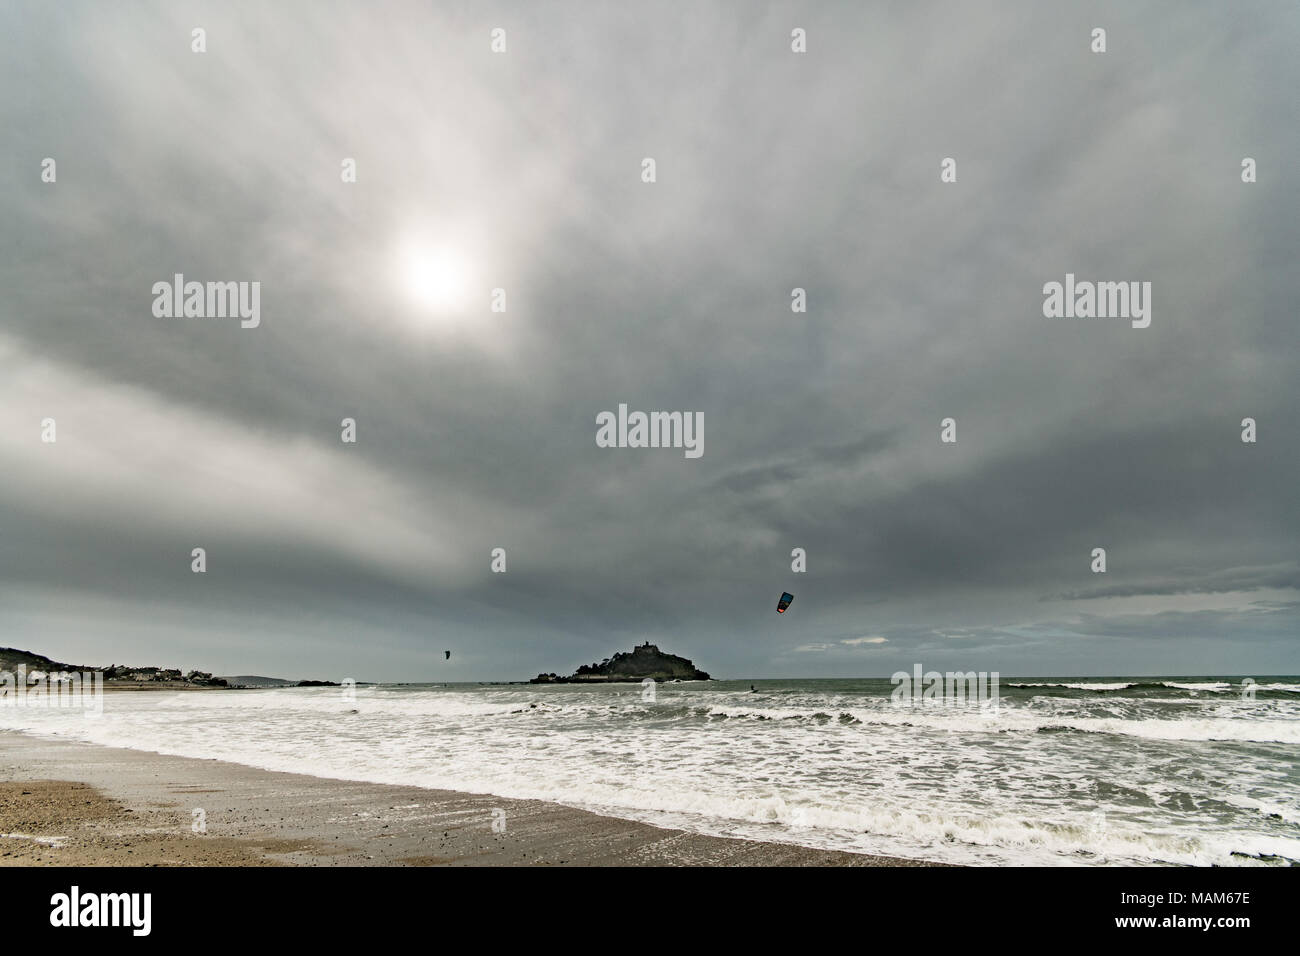 Marazion, Cornwall, UK. 3rd April 2018. UK Weather. After a washout of a bank holiday weekend, the weather for tuesday is starting to look better. A layer of thick clouds is forecast to give way to sunshine for this afternoon. WIth a stiff breeze still, kite surfers were out again on the sea today. Credit: Simon Maycock/Alamy Live News - Stock Image